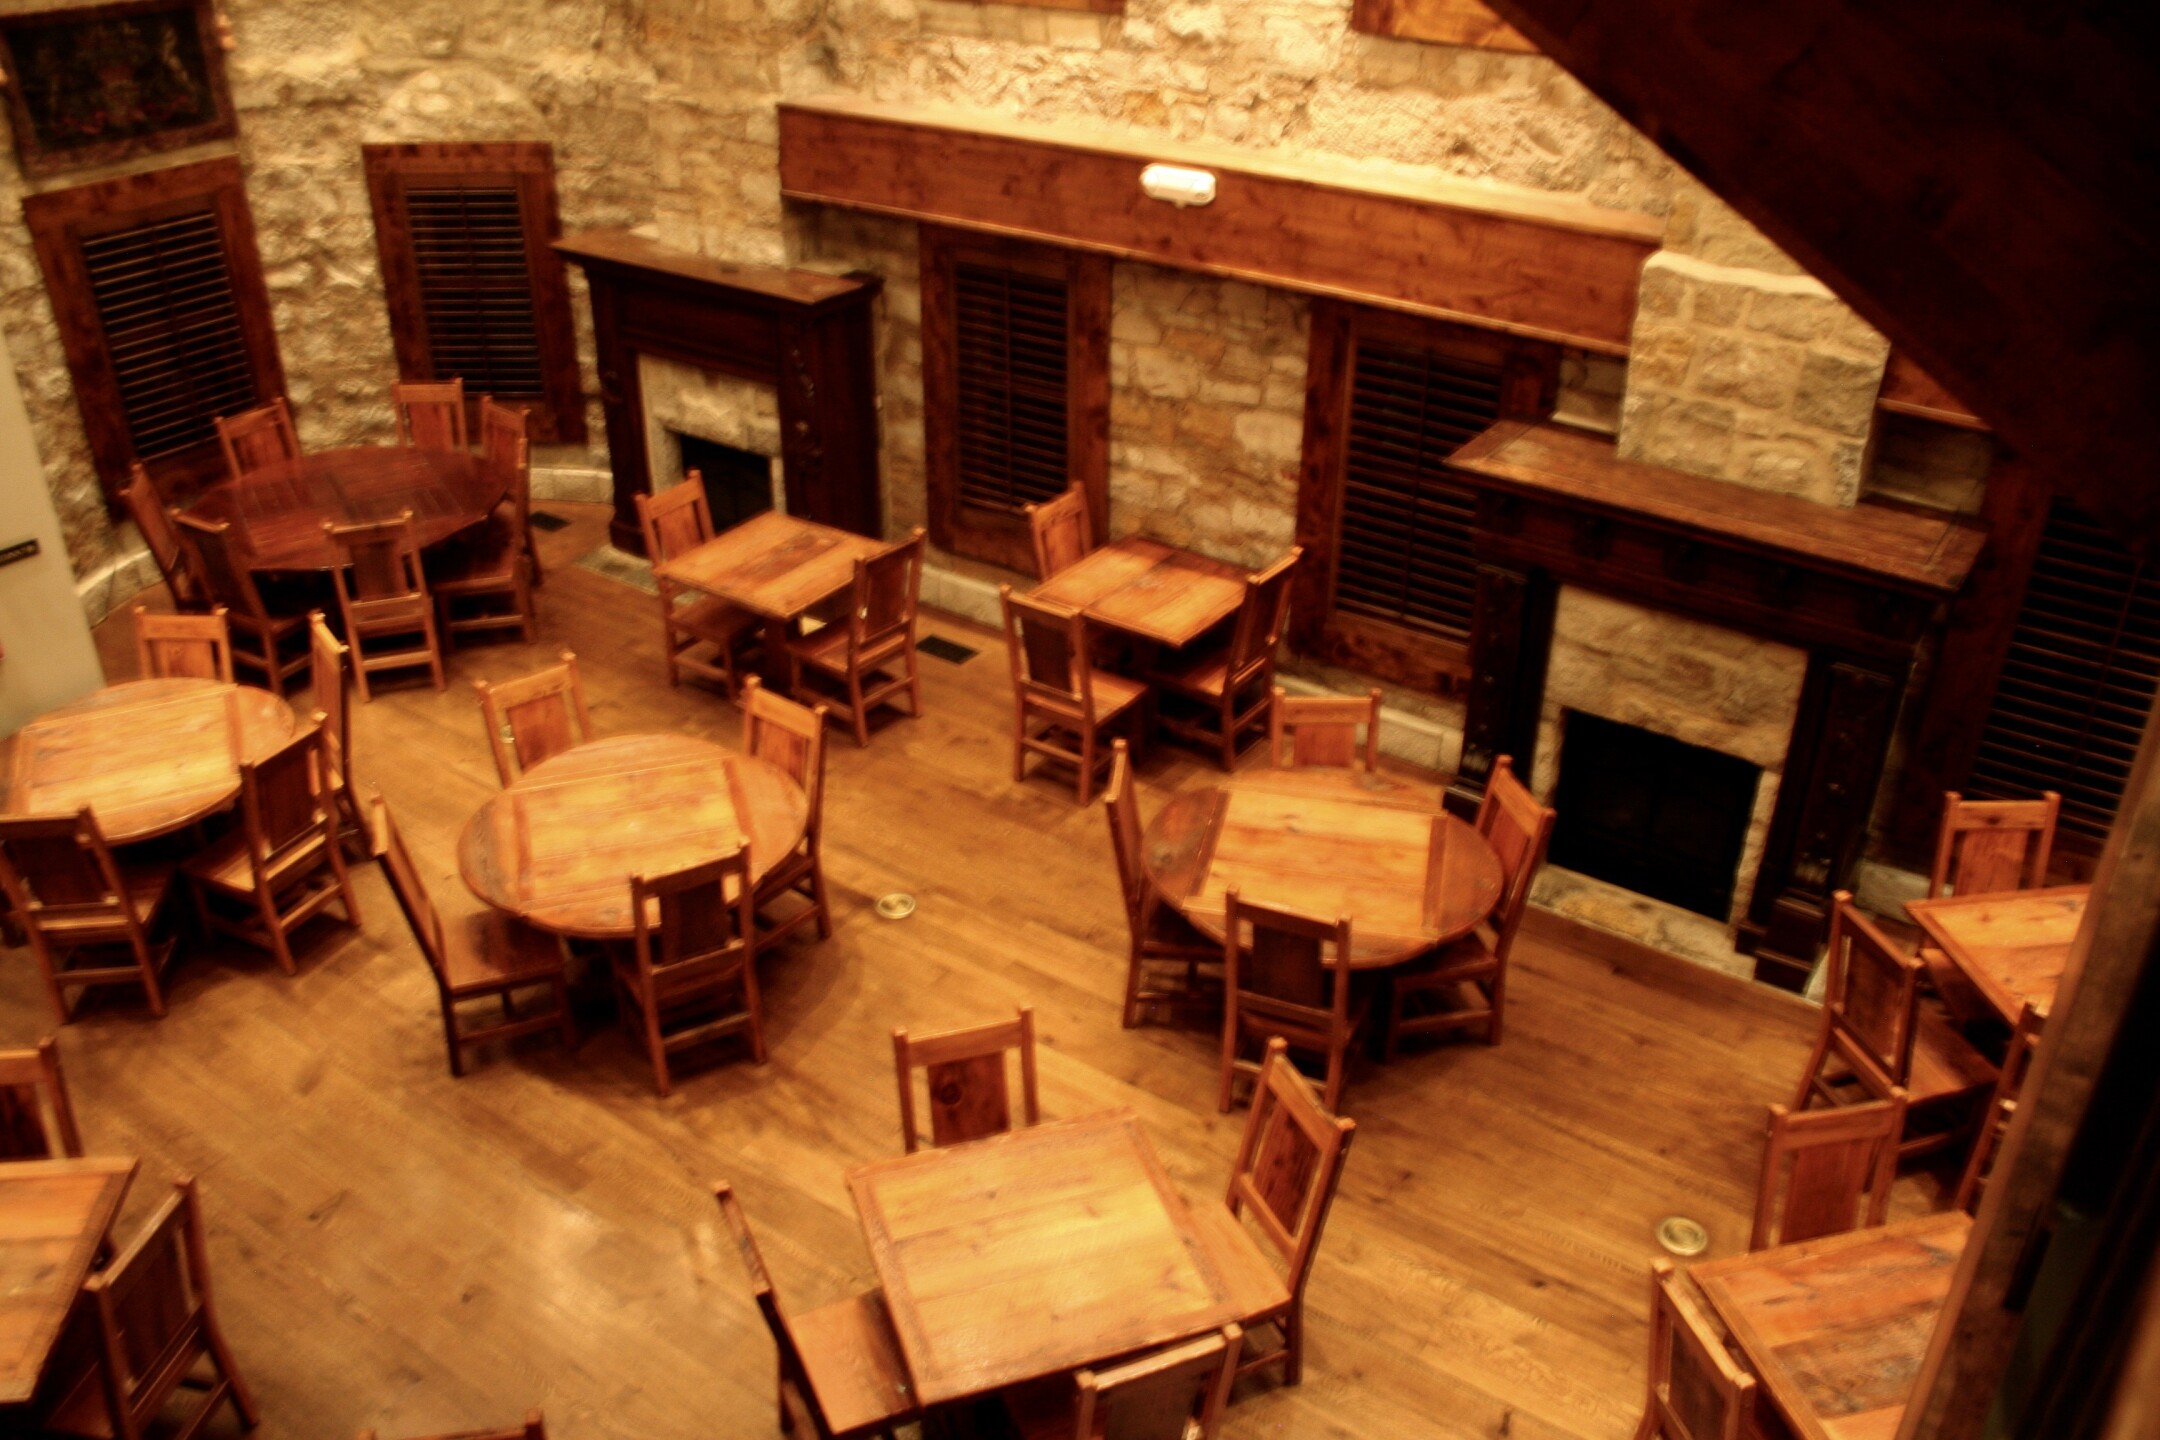 Castle Caenen Seating Main Floor with Reclaimed Barn Wood Tables and Chairs.jpg